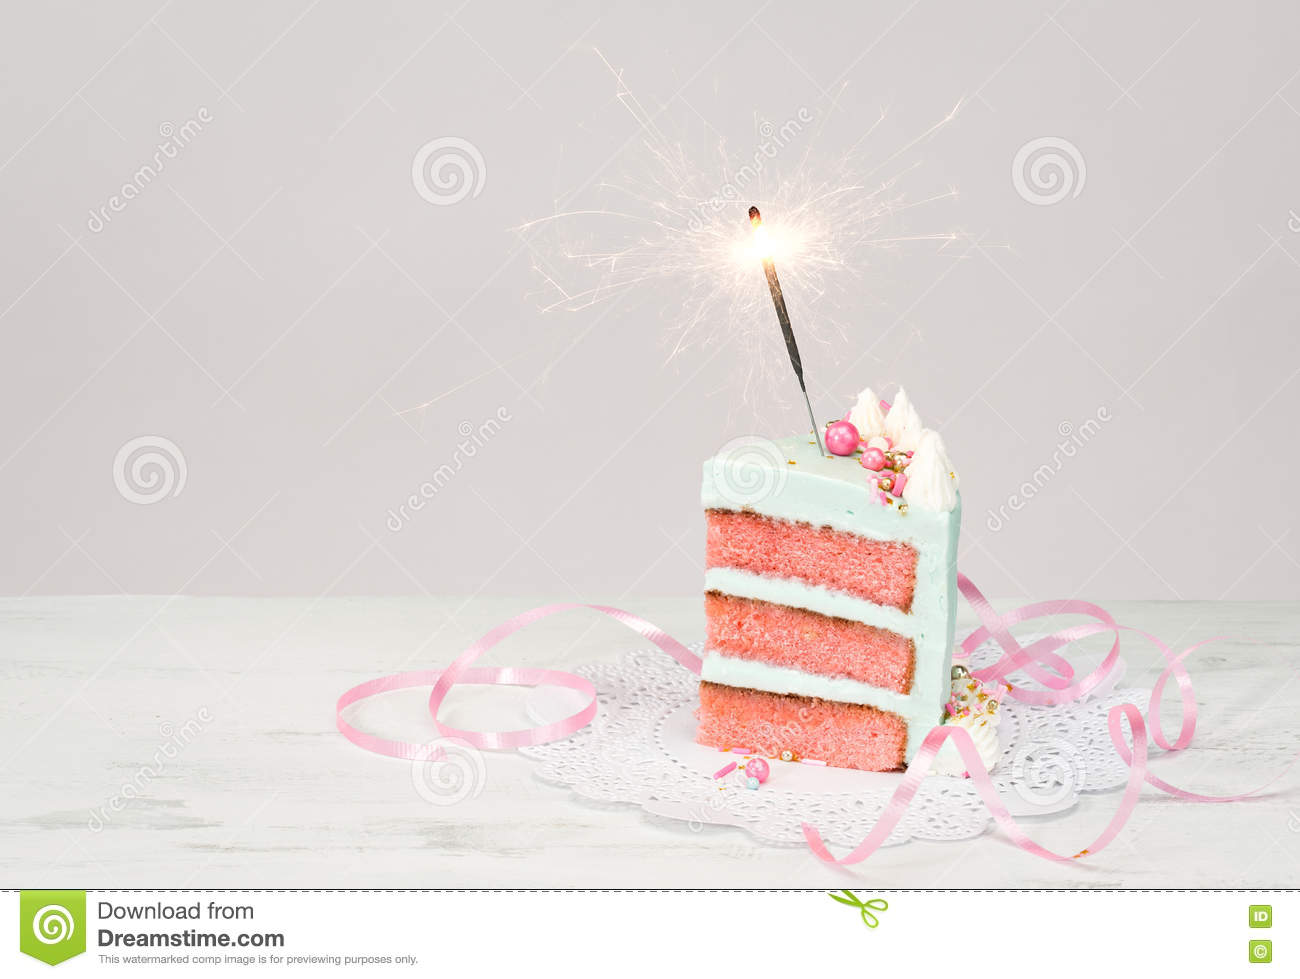 Slice Of Birthday Cake Over White Background With Pink Layers And Sparkler